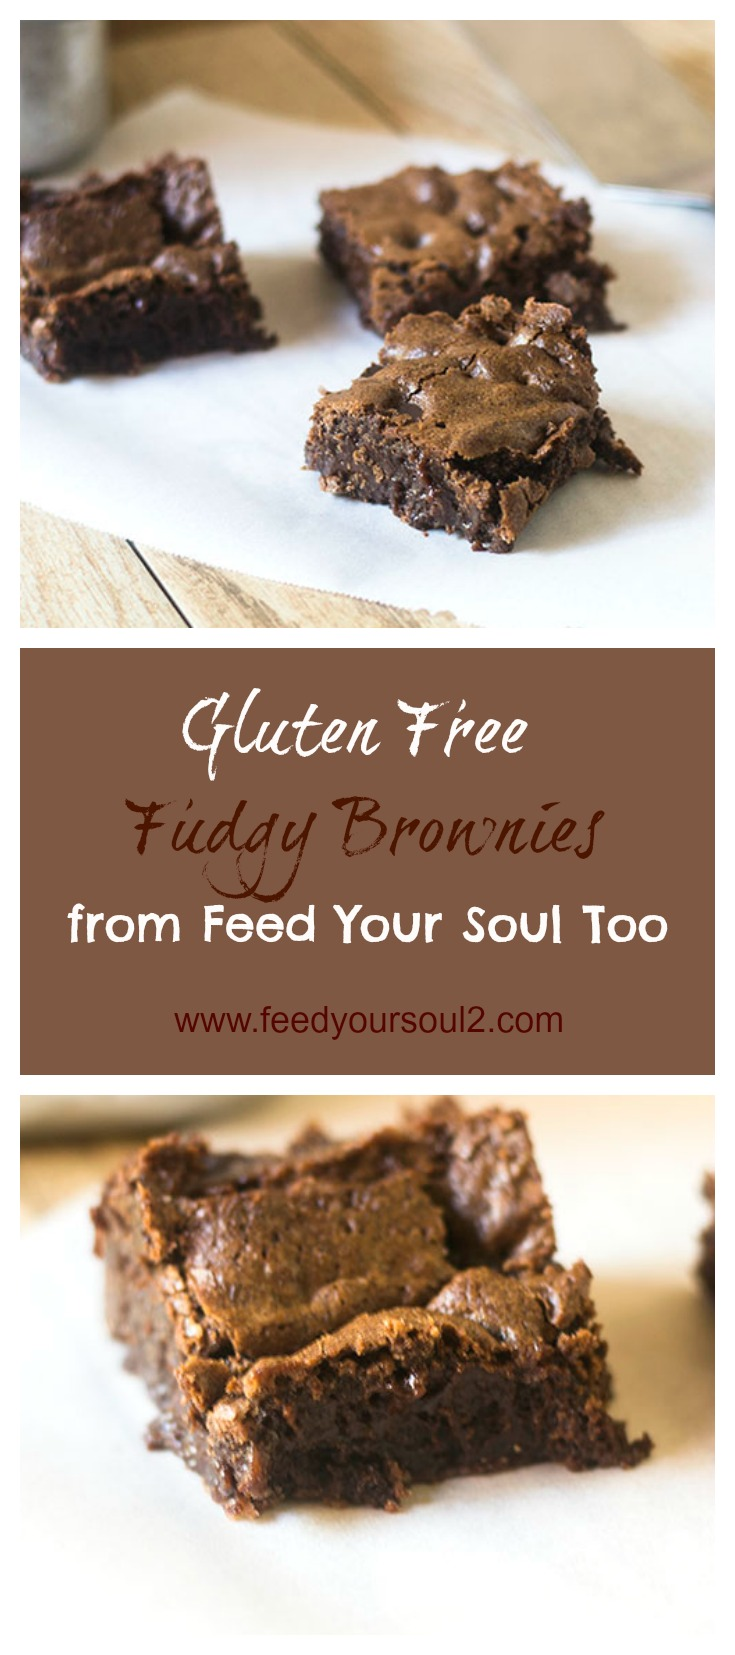 Gluten Free Fudgy Brownies #glutenfree #dessert #chocolate | feedyoursoul2.com